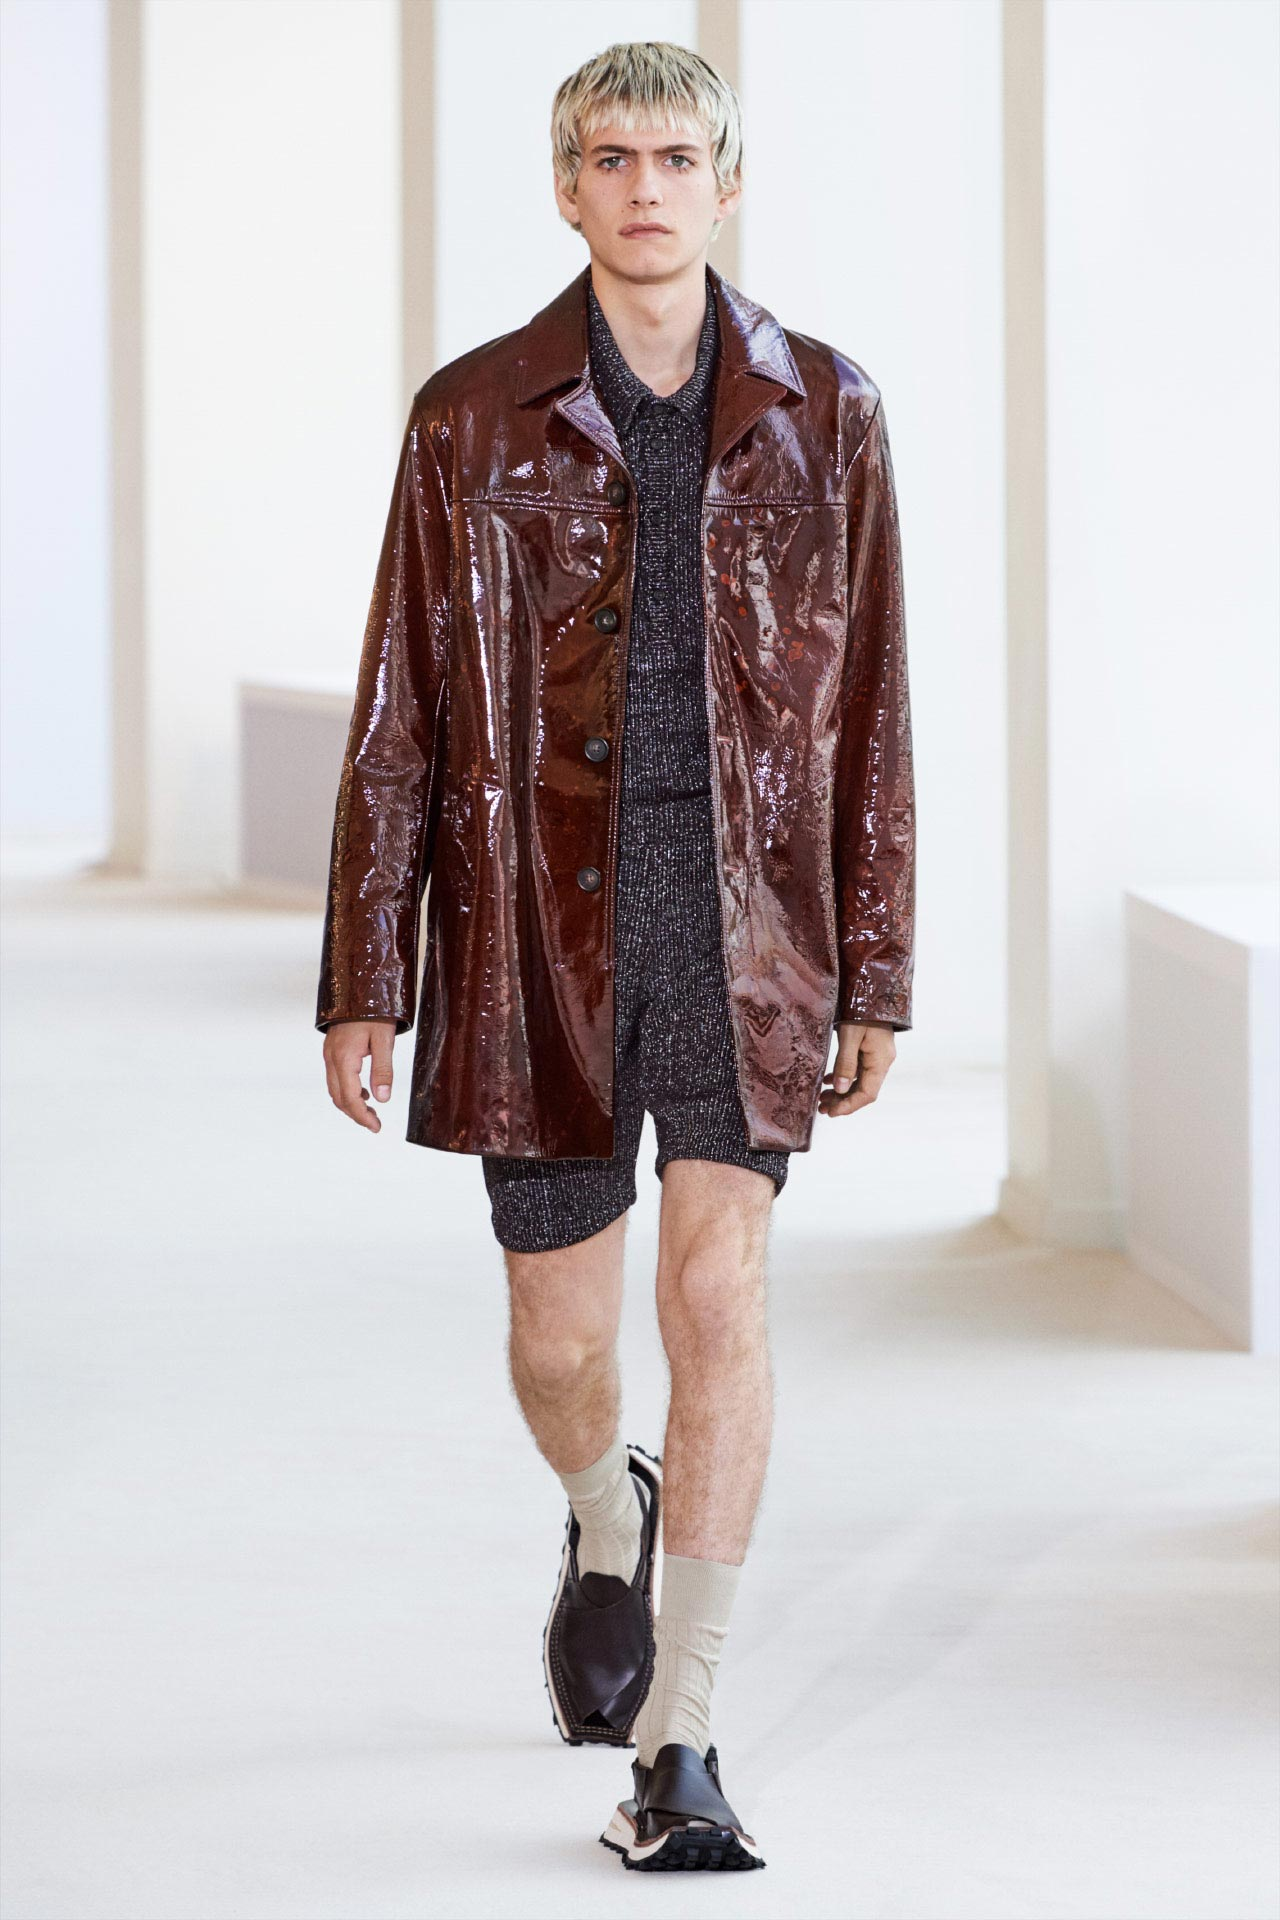 Look Spring/Summer, image 14